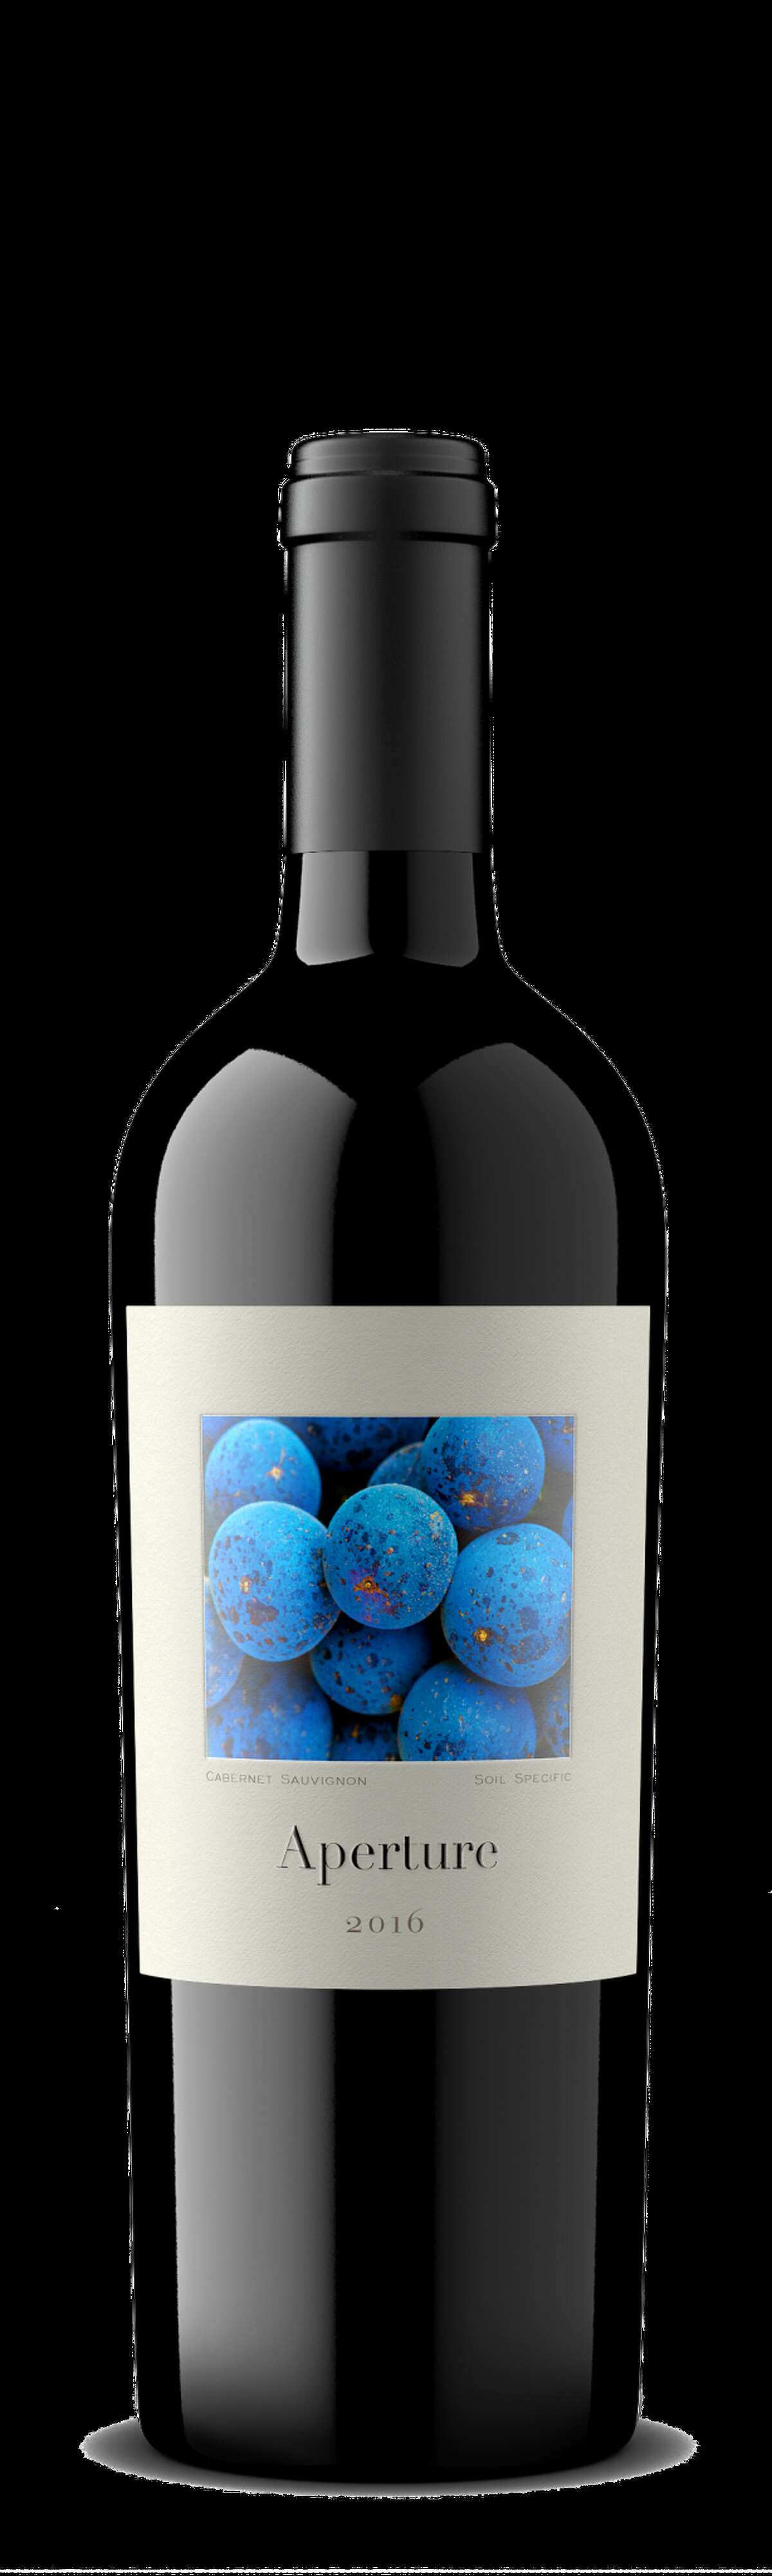 Aperture Crane's venture into the food and beverage business includes Aperture, a winery in California. Pictured: Aperture Cabernet Sauvignon.